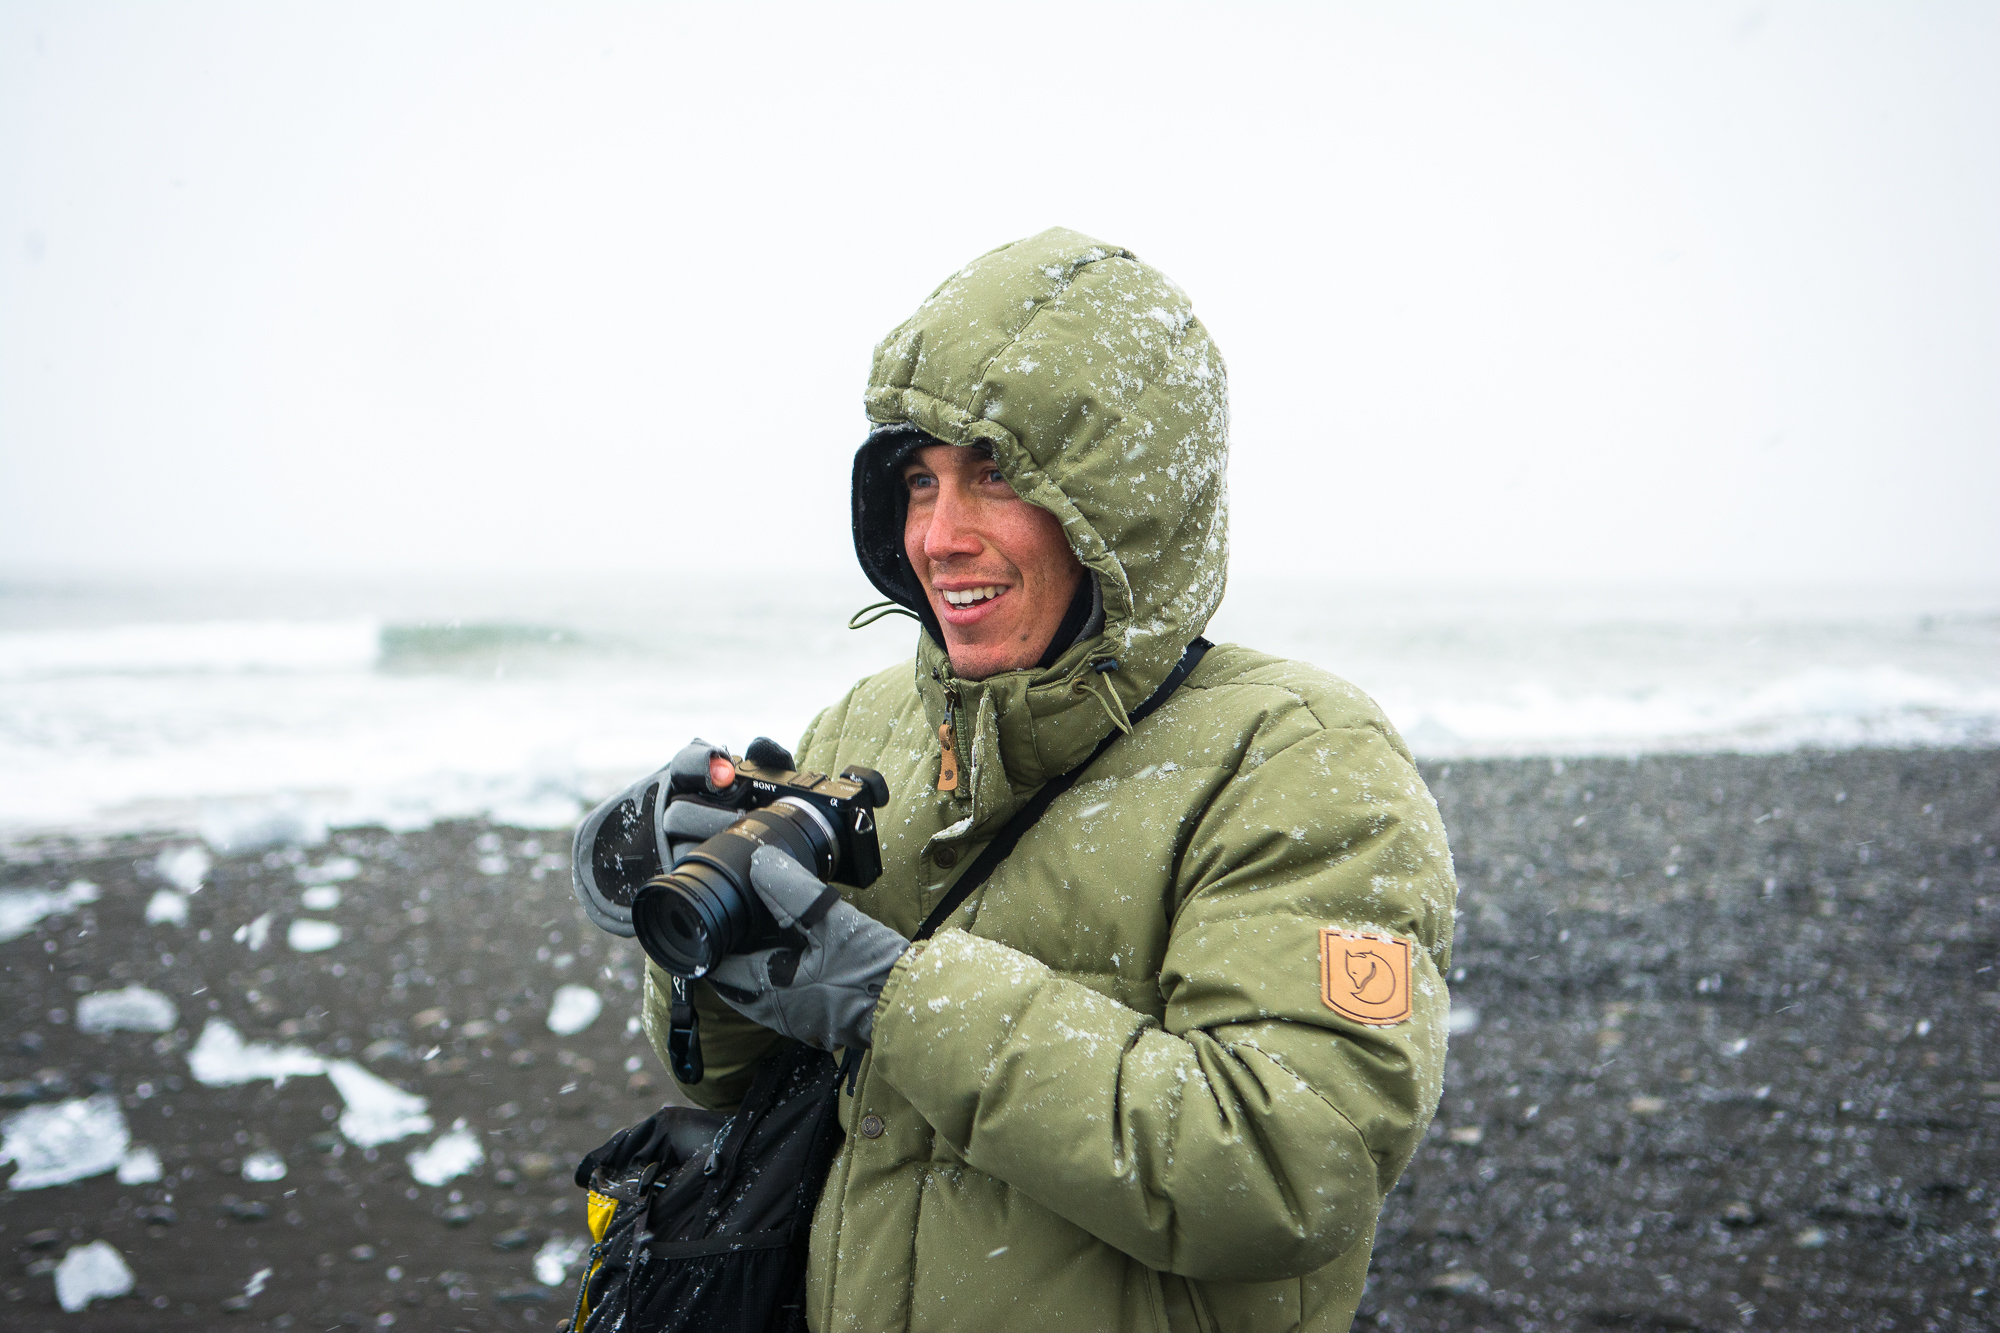 Interview: Chris Burkard, Outdoors Photographer